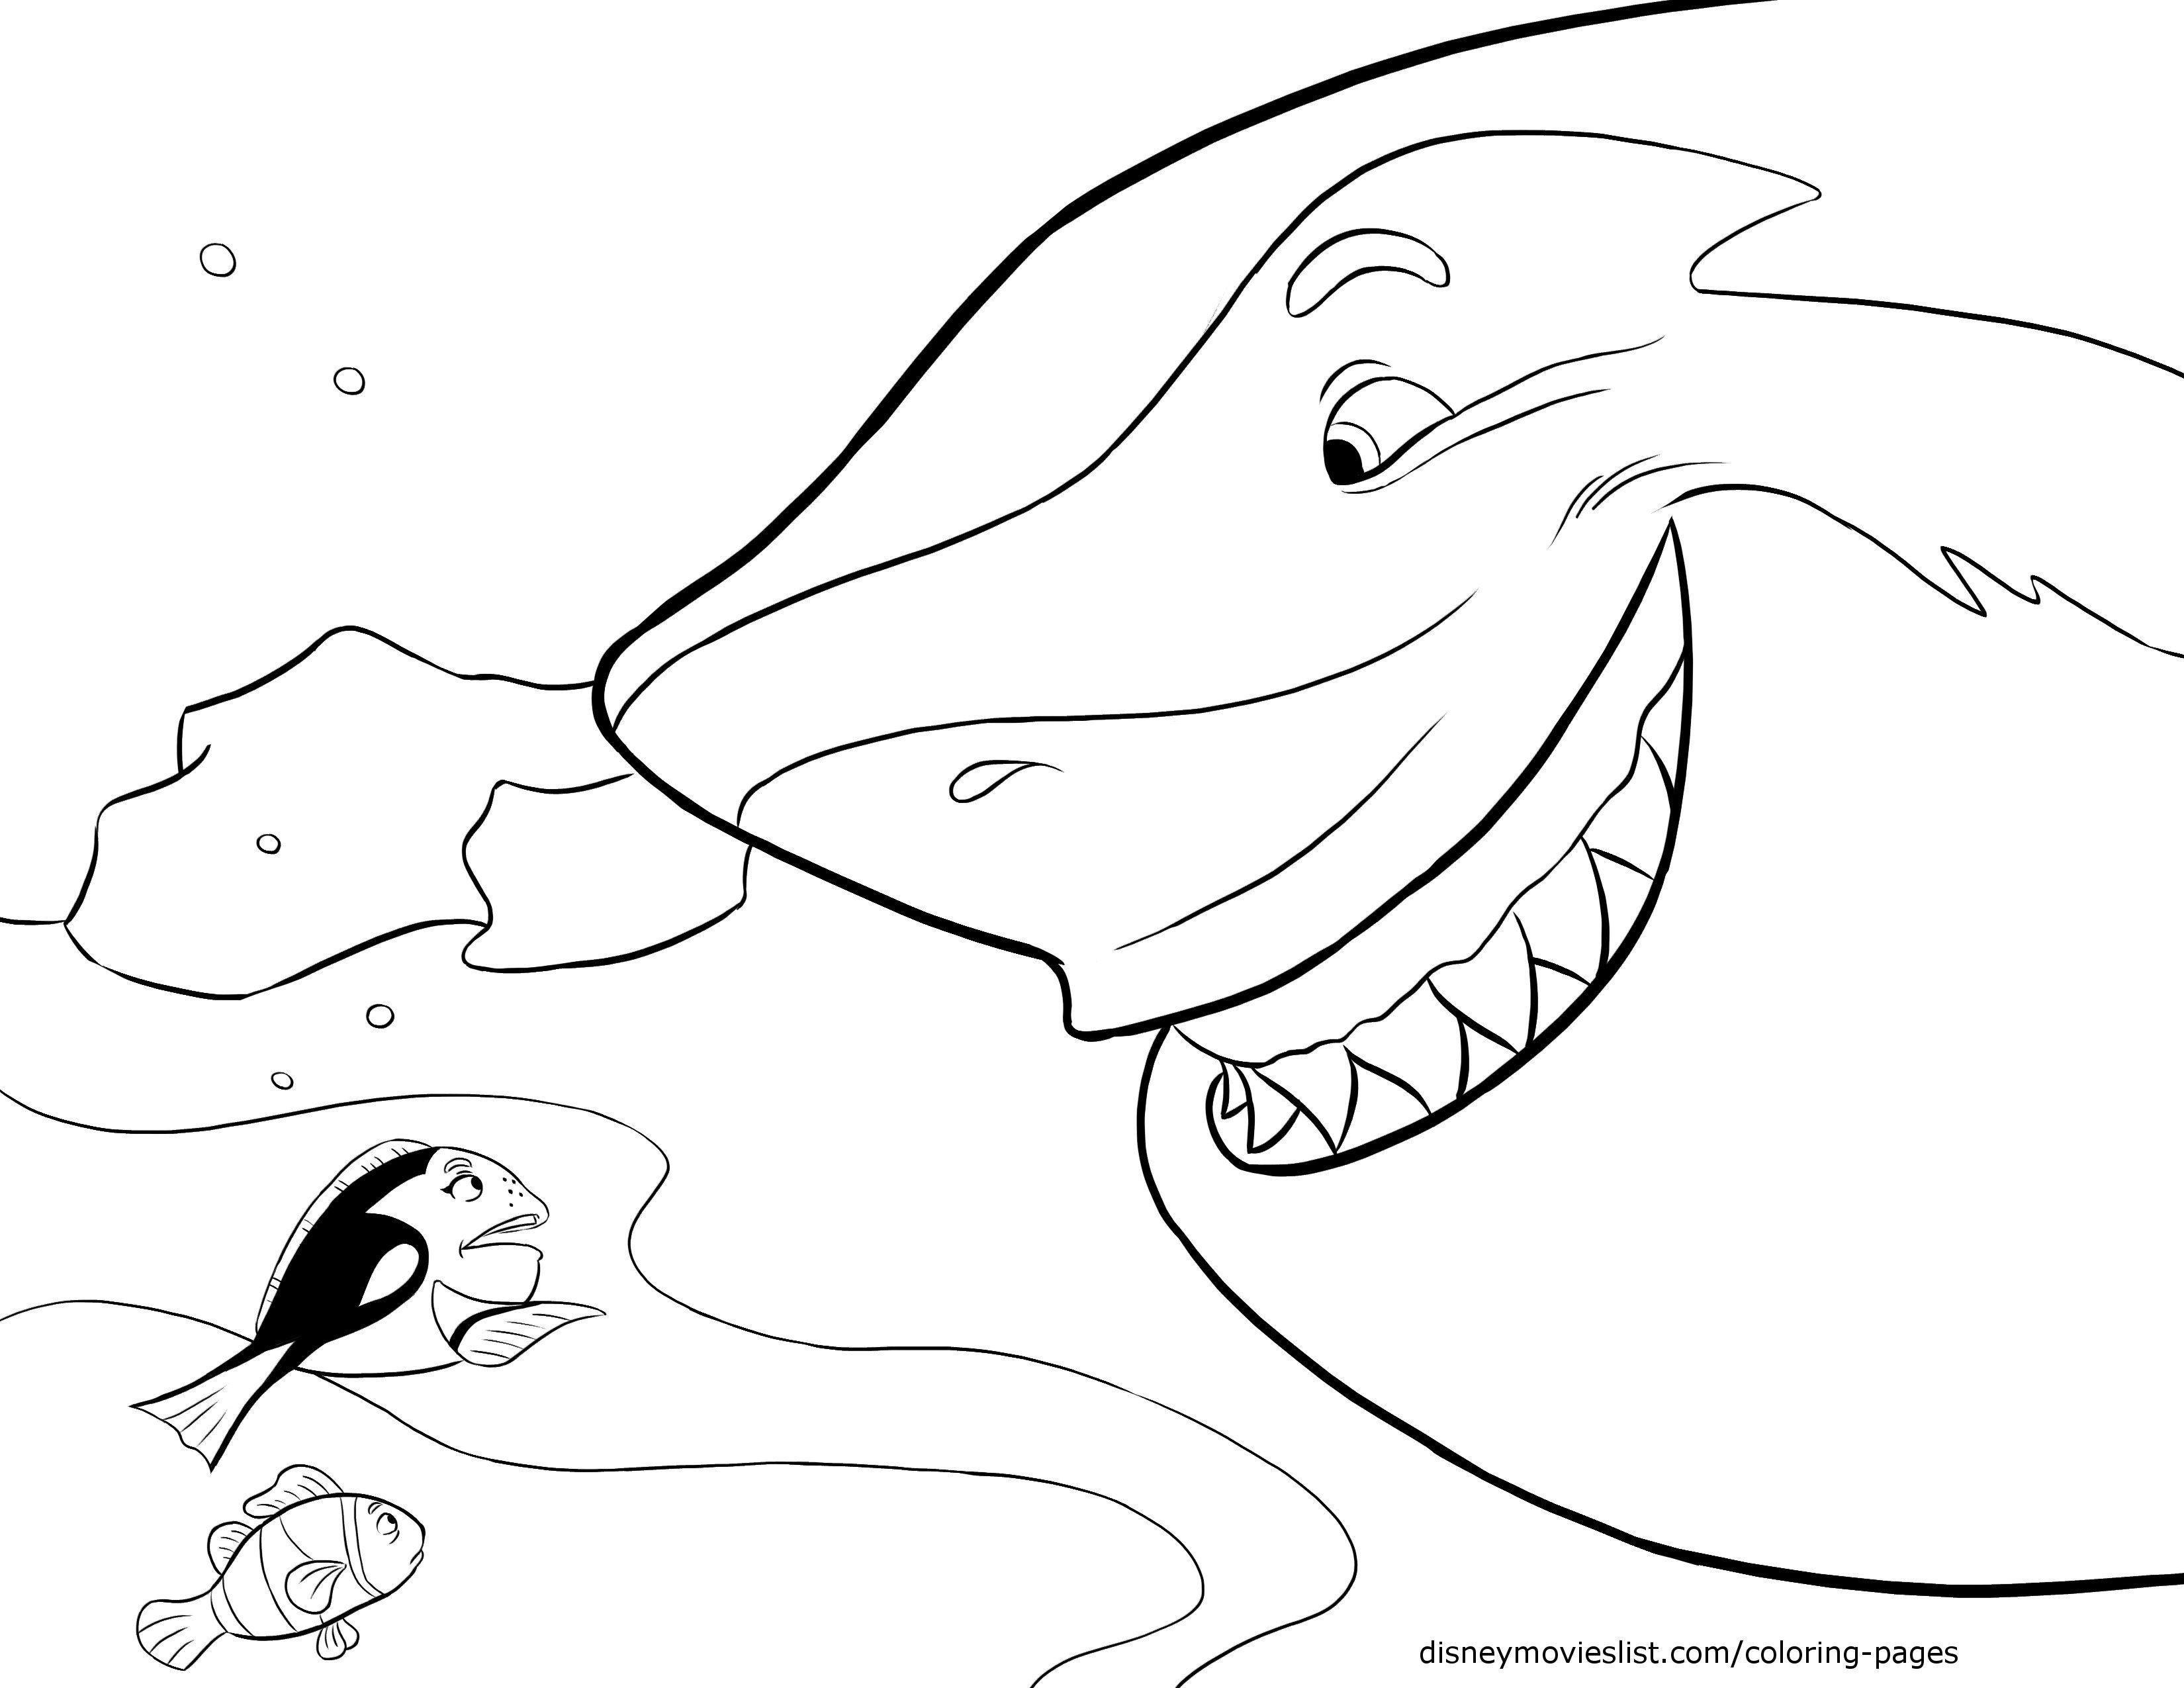 3300x2550 Disney S Finding Nemo Coloring Pages Sheet Free Disney Printable